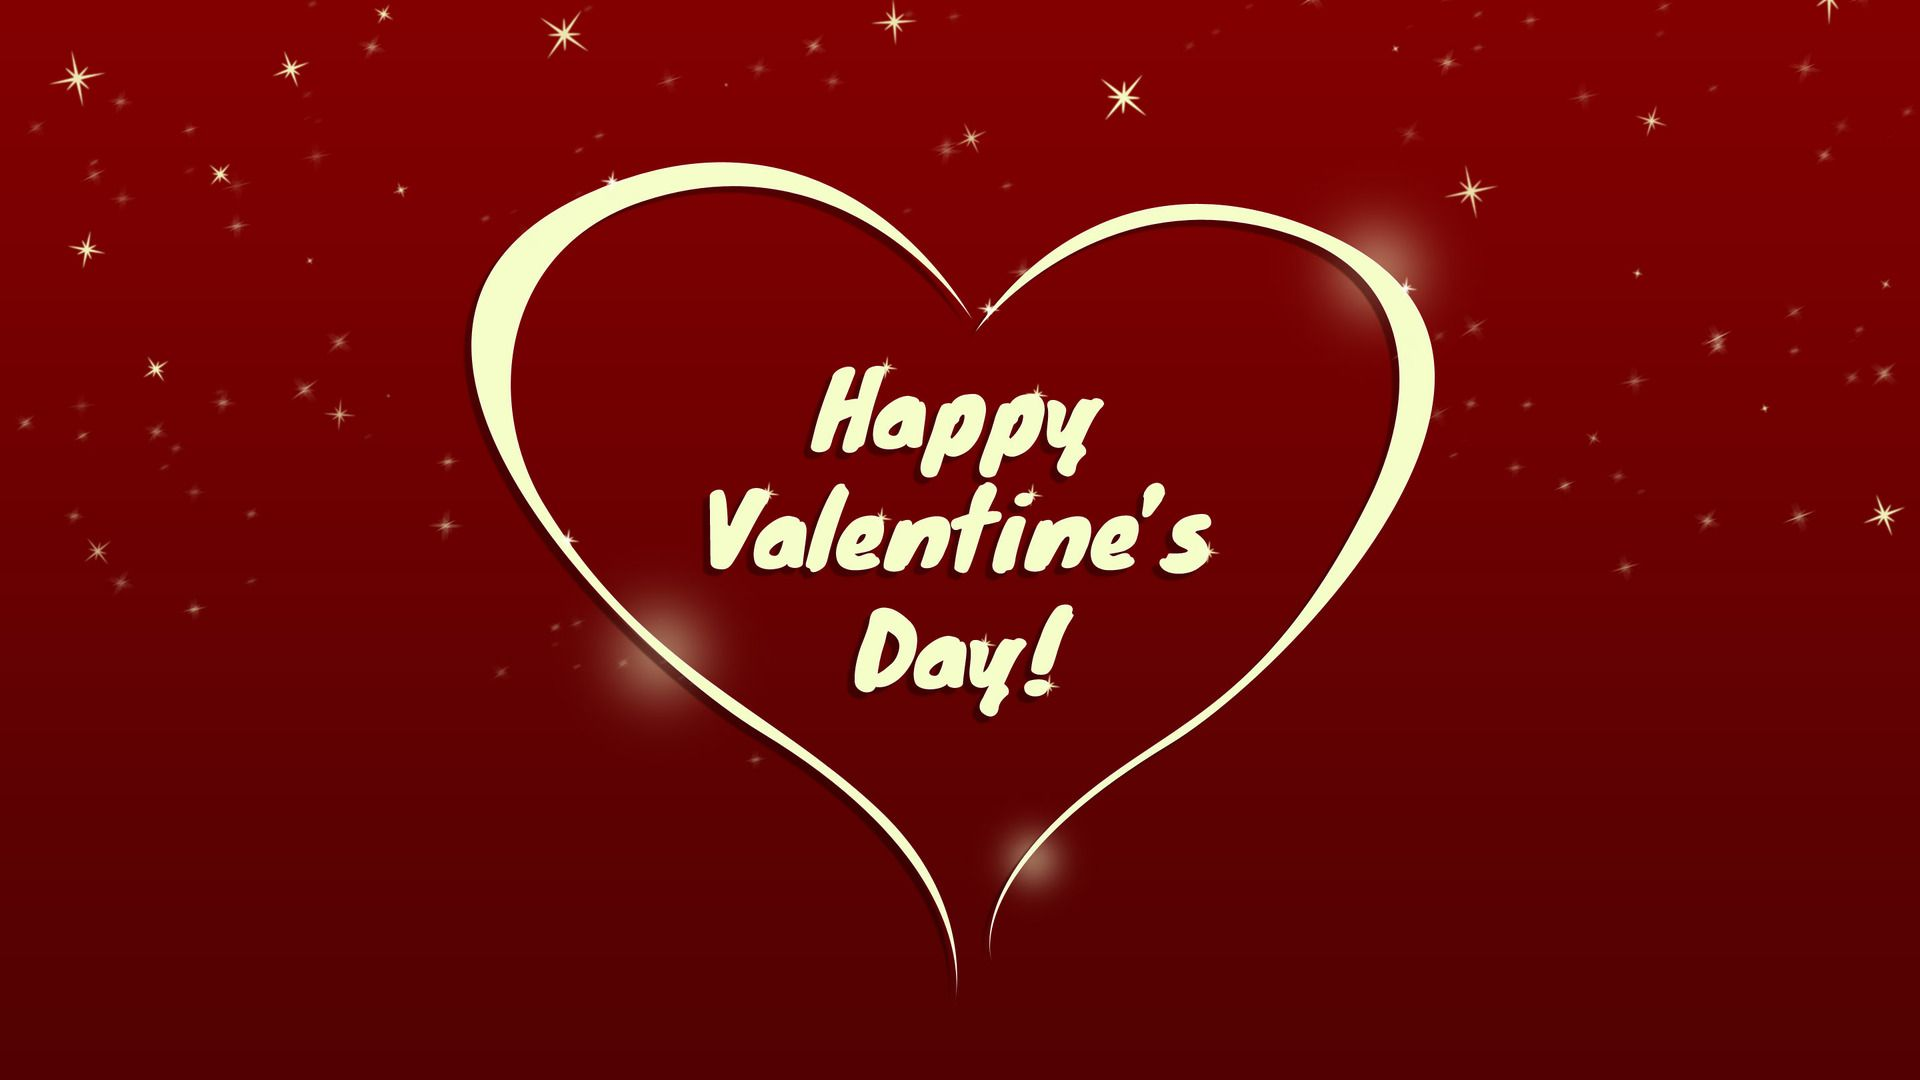 Wallpaper download of 2017 - Valentine Day 2017 Hd Images Free Download Latest Valentine Day 2017 Hd Images For Computer Mobile Iphone Ipad Or Any Gadget At Wallpaperschar